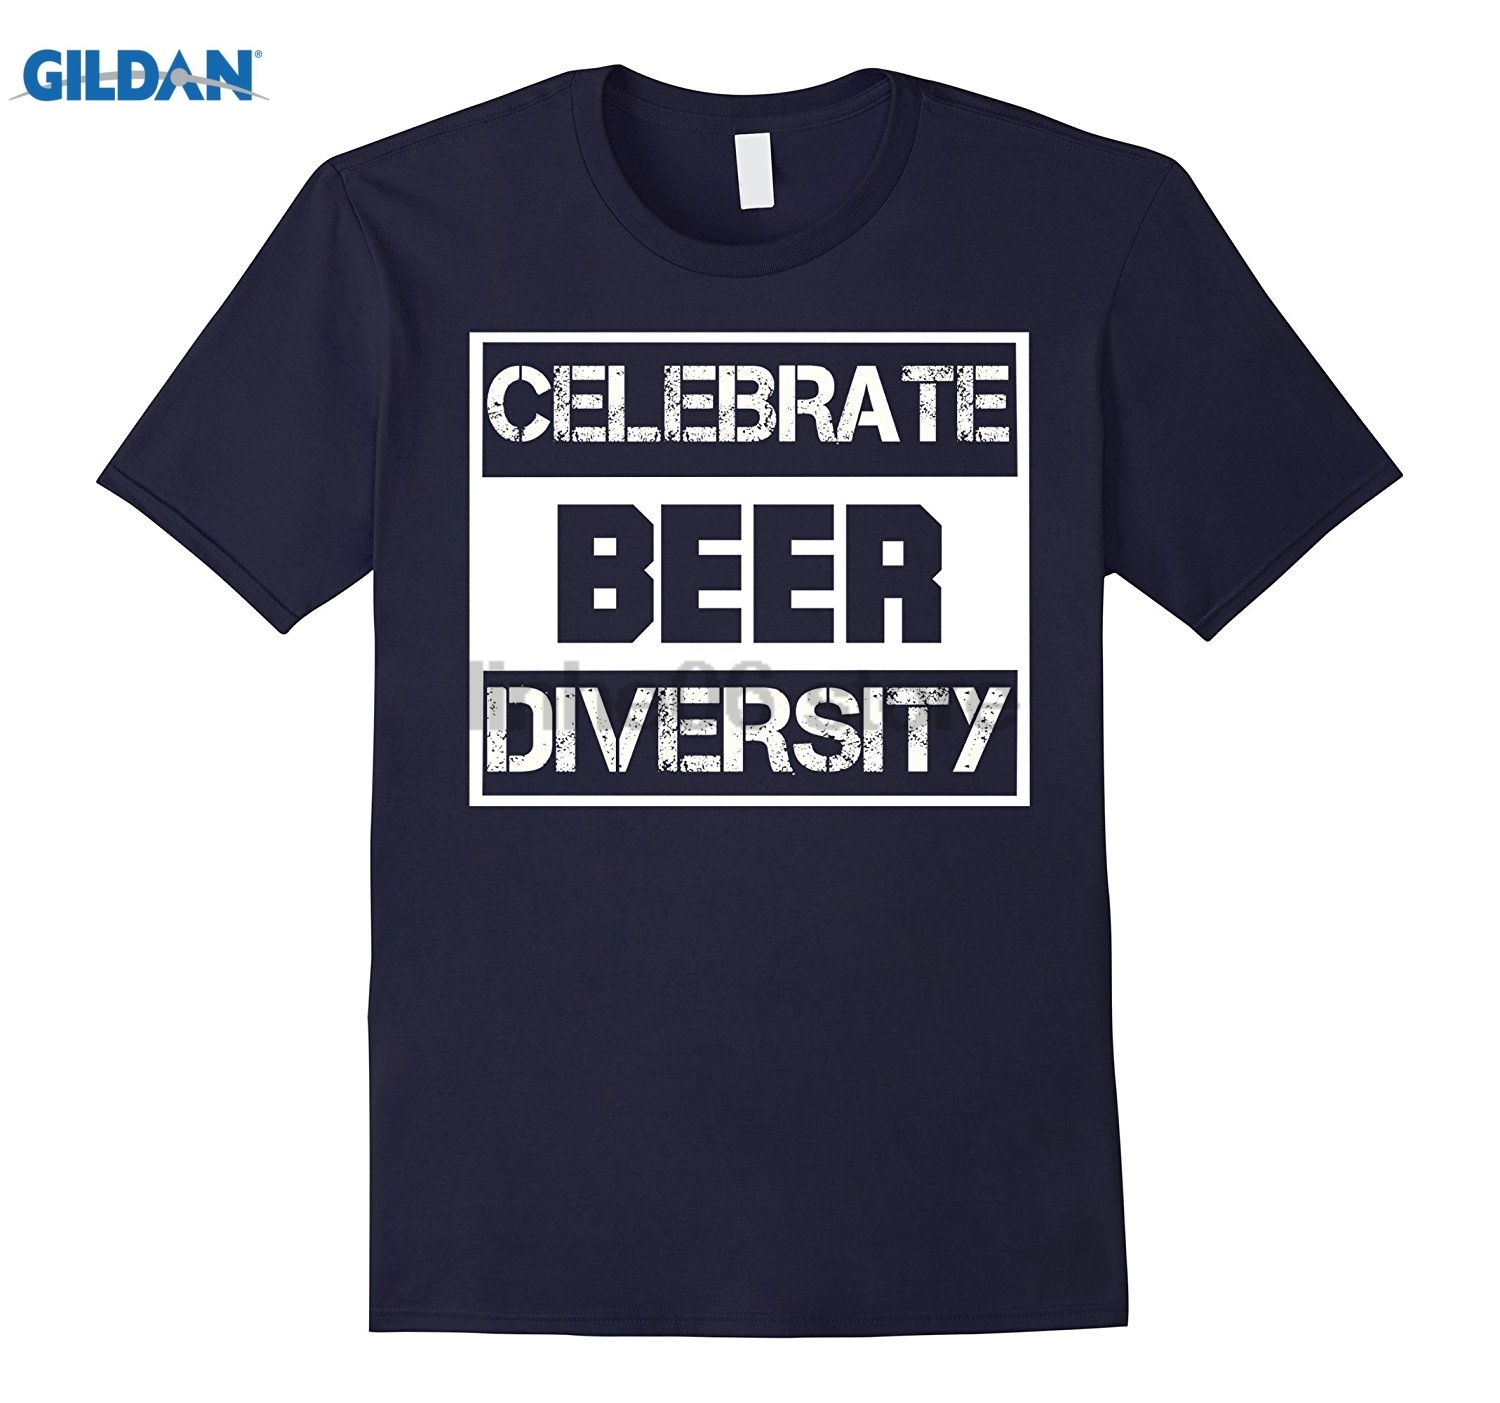 GILDAN Celebrate Beer Diversity beer Funny T-shirt Mothers Day Ms. T-shirt